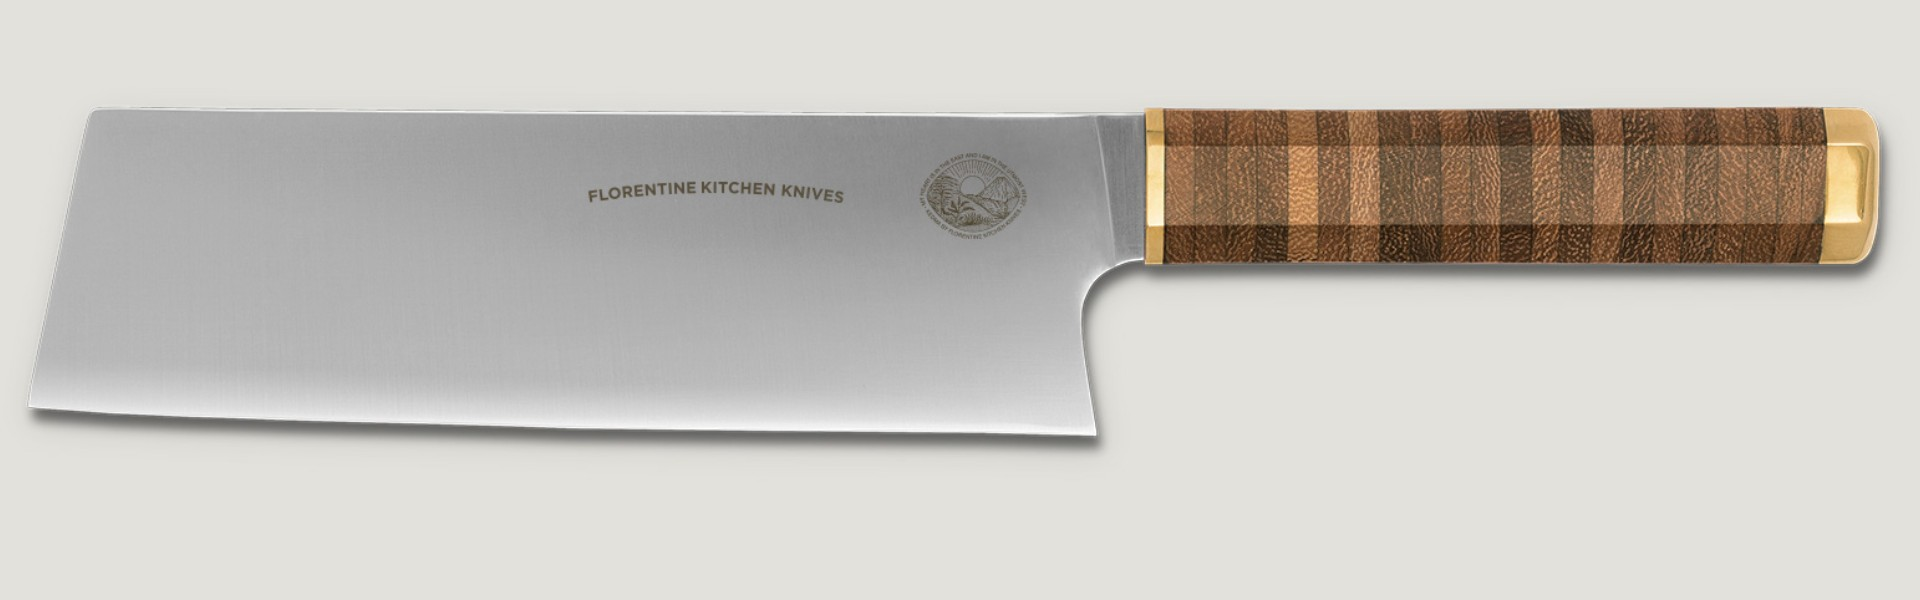 Florentine Kitchen Knives KEDMA Nakiri